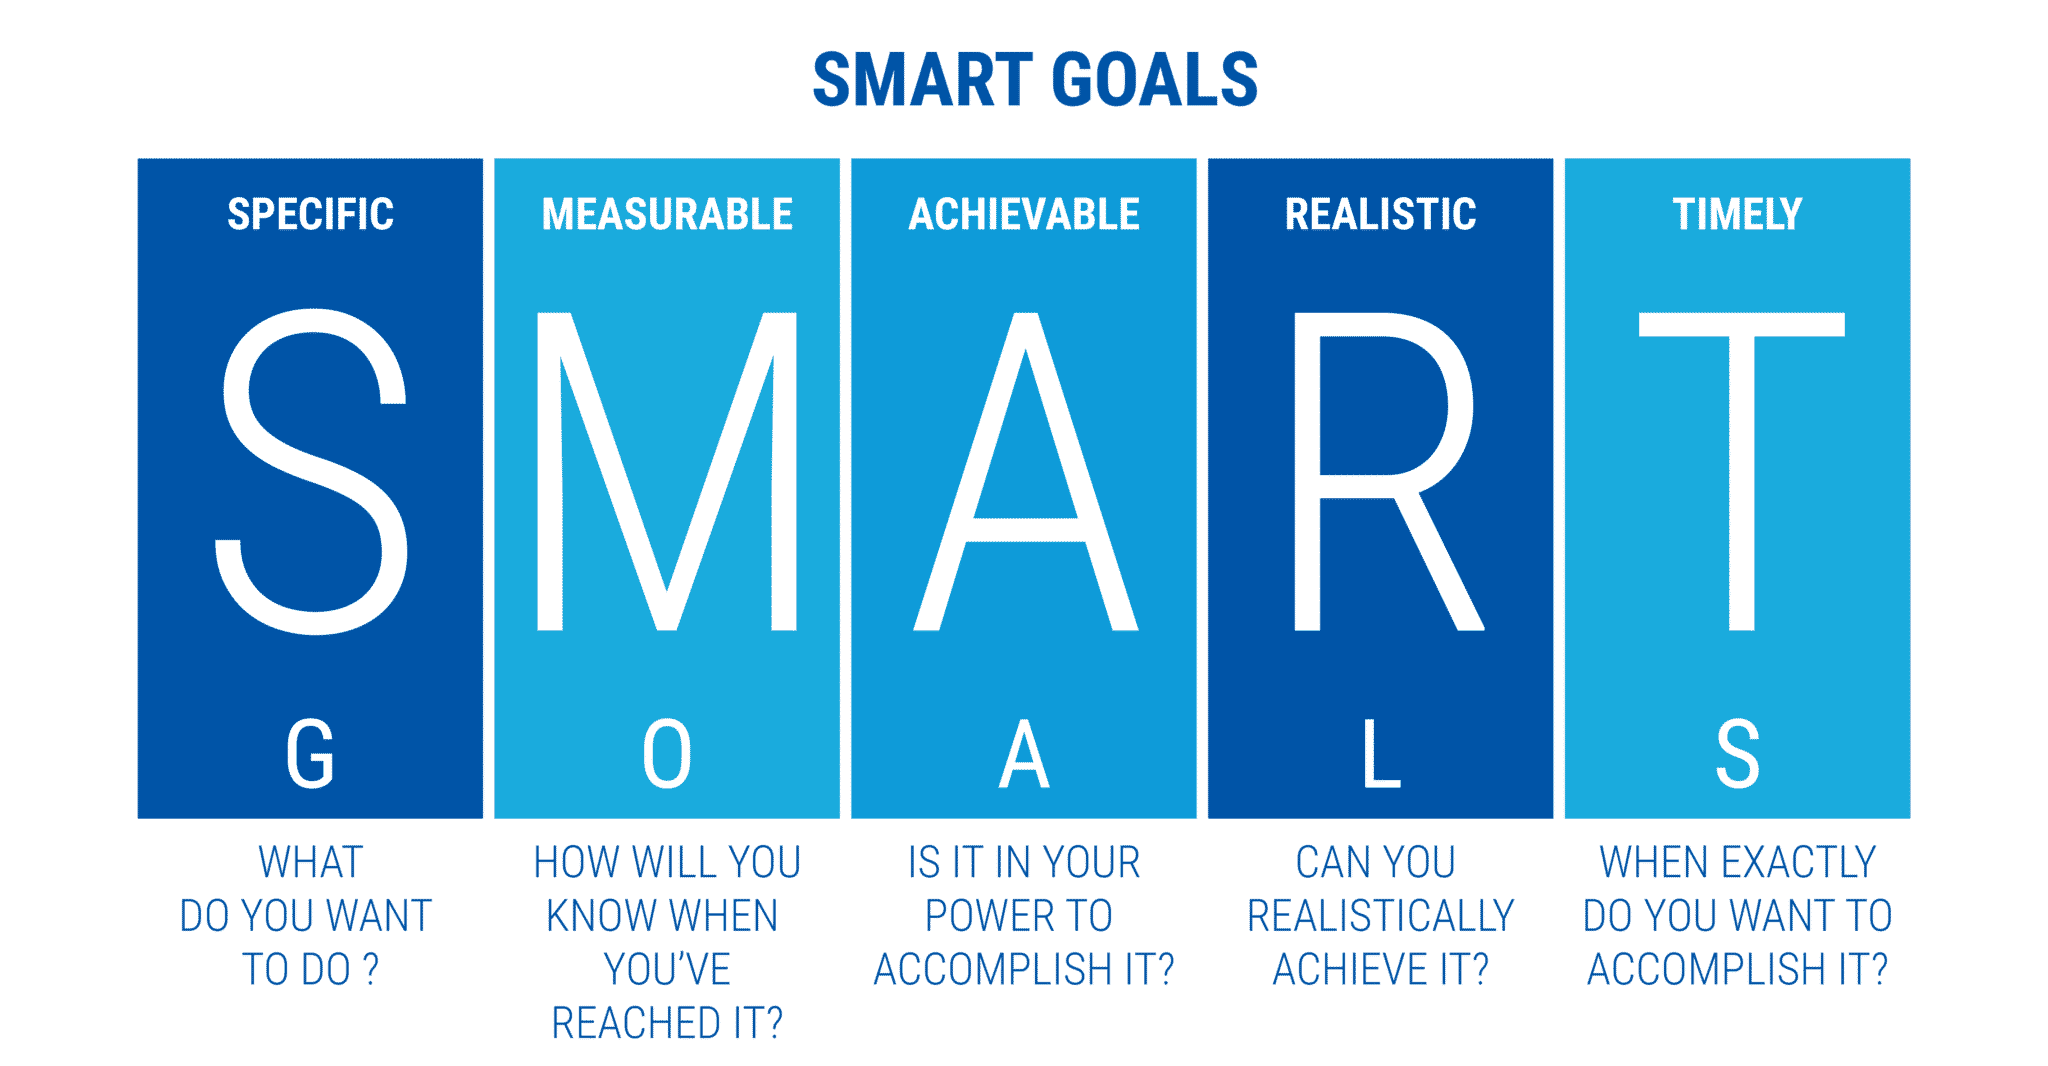 smart goals - starting a coaching business while working full-time